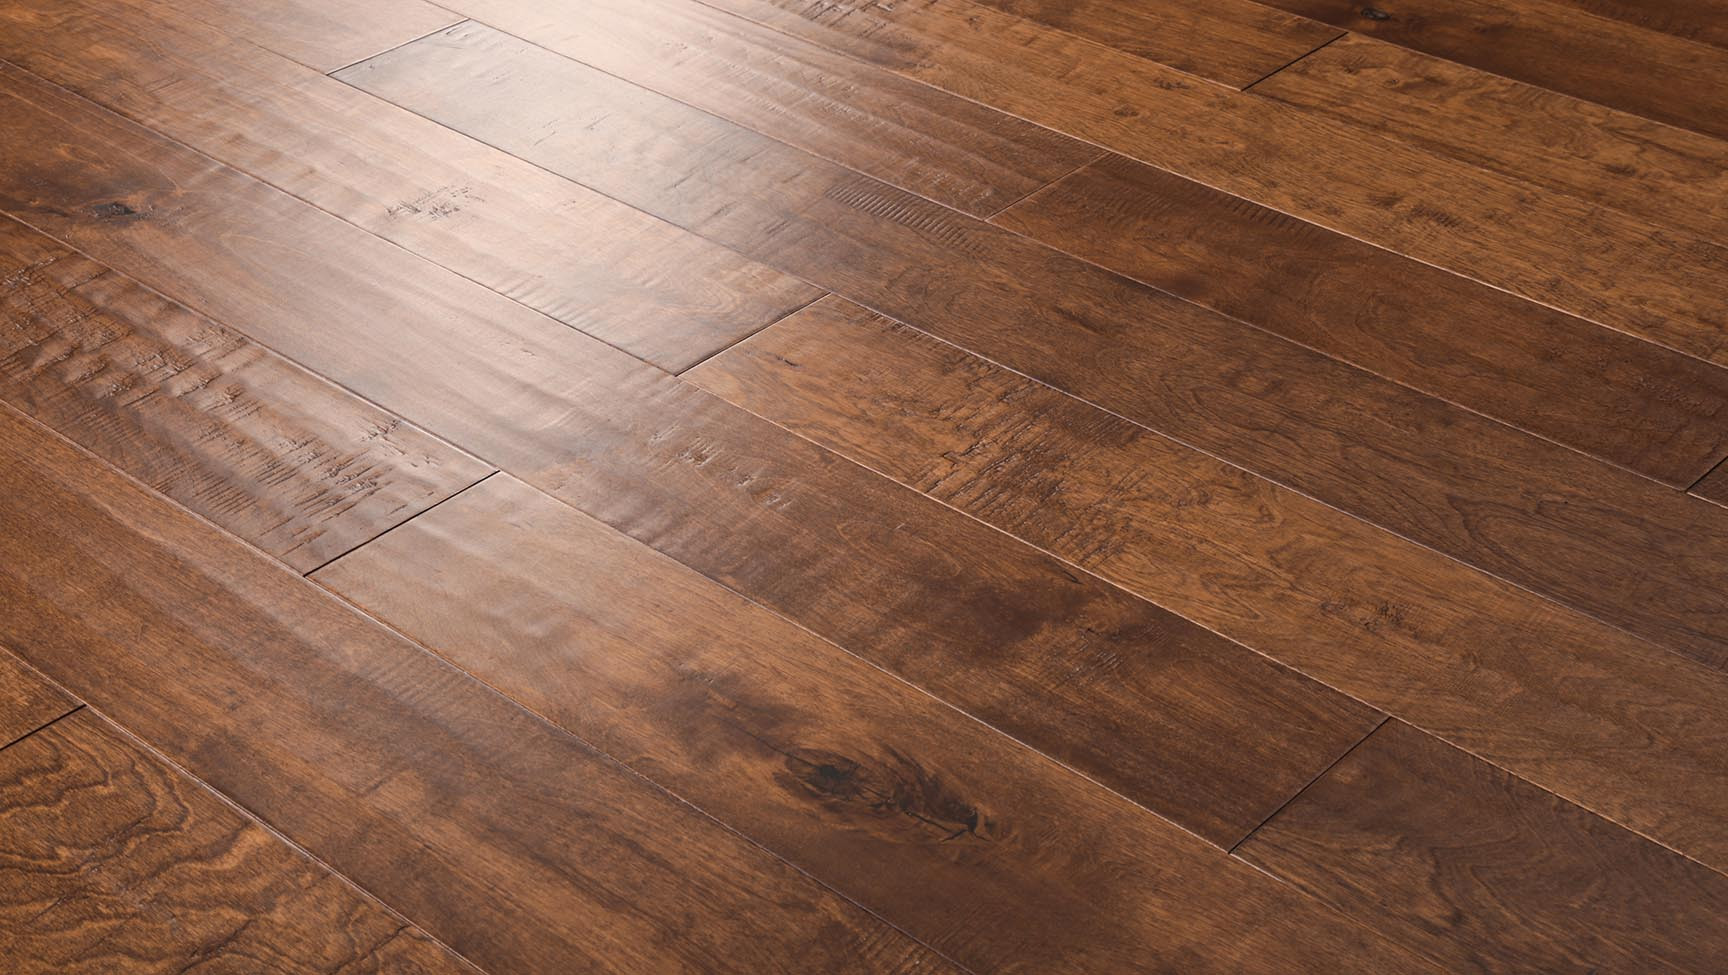 High Janka Rating Hardwood Flooring Of Hardwood Flooring within 20161101153424 9705